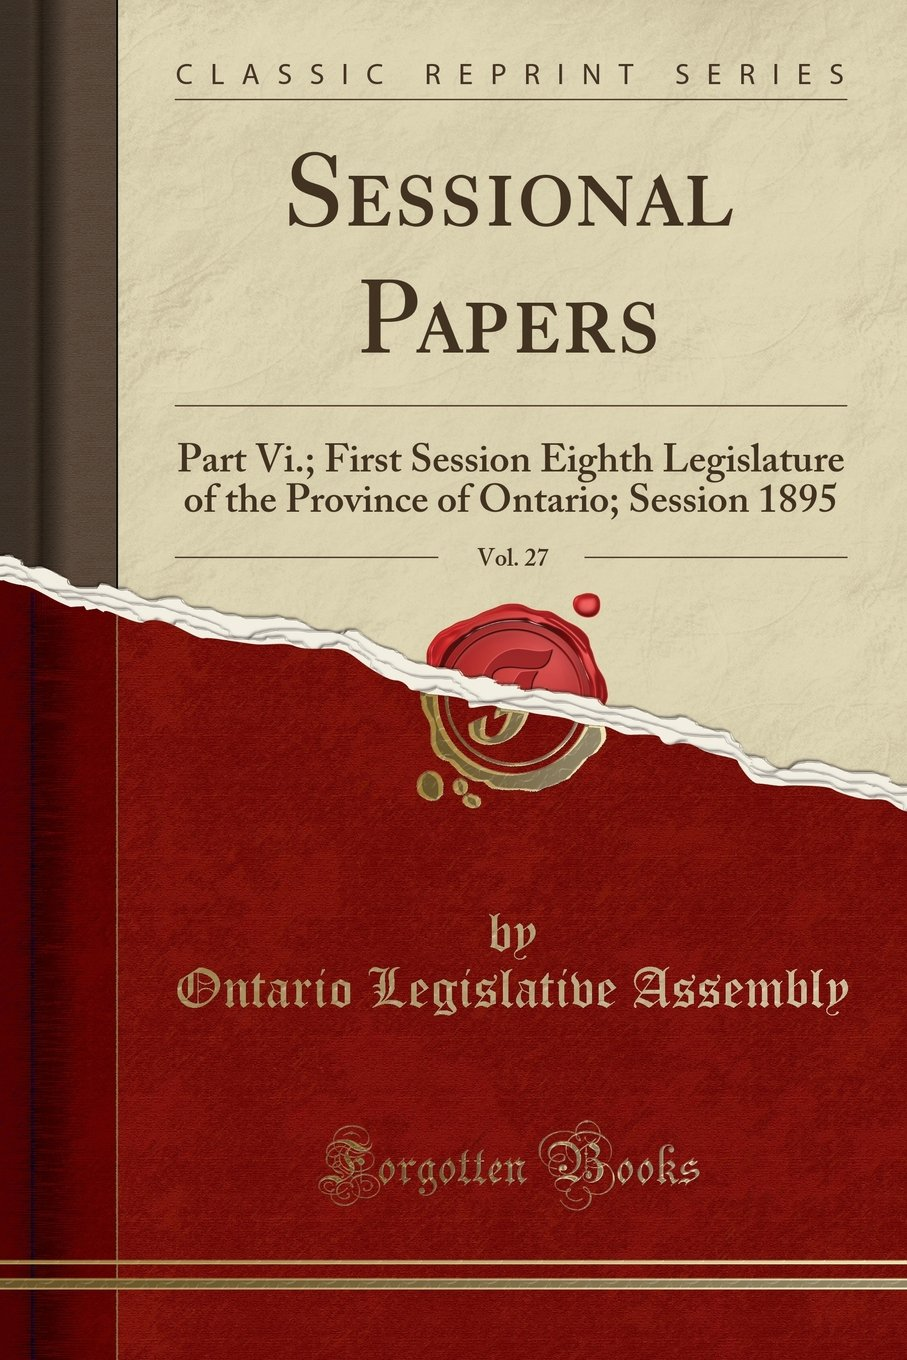 Sessional Papers, Vol. 27: Part Vi.; First Session Eighth Legislature of the Province of Ontario; Session 1895 (Classic Reprint) ebook